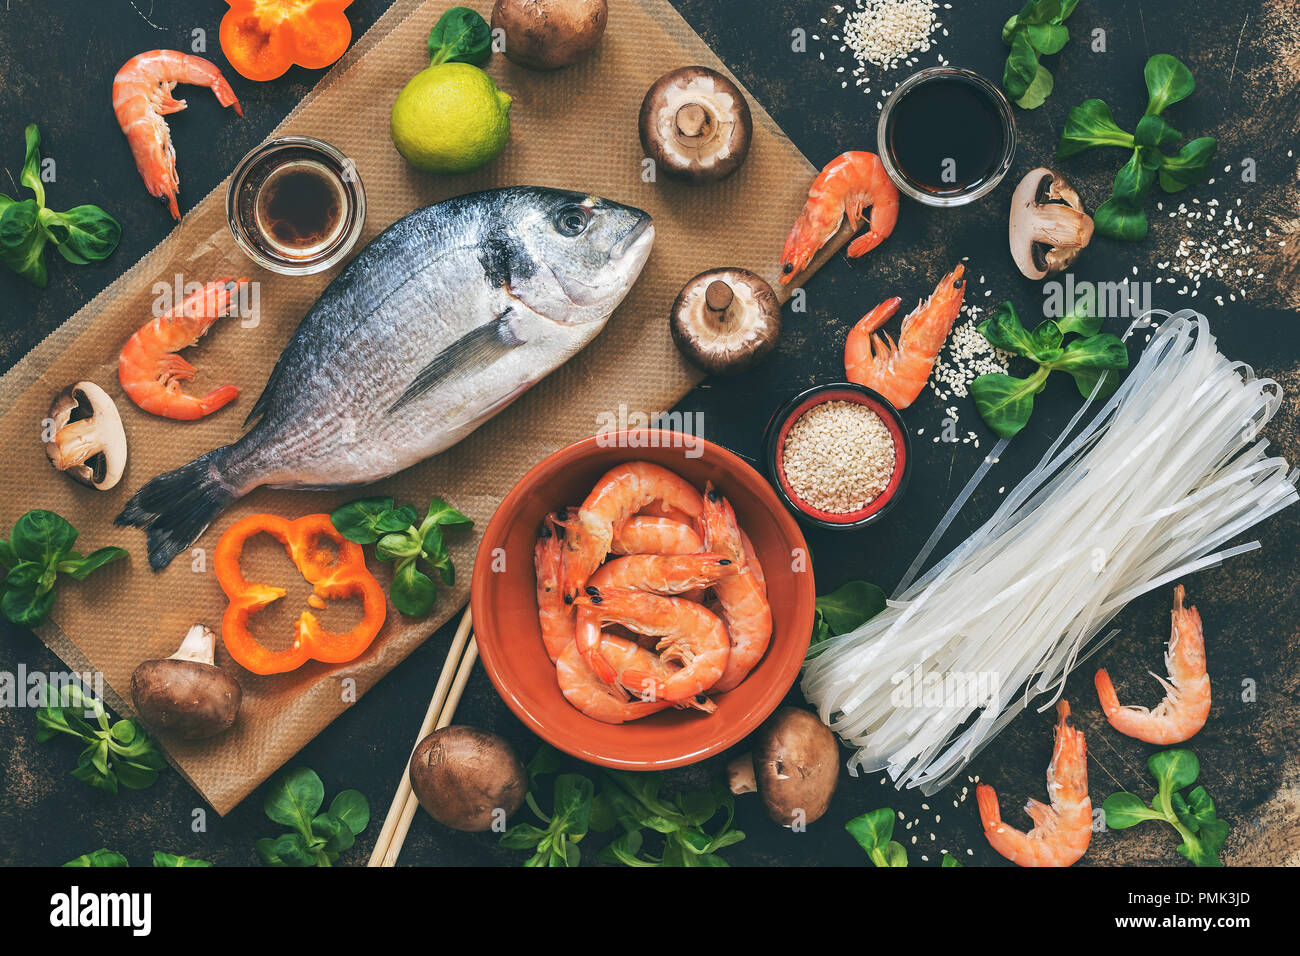 Ingredients for Asian dishes - raw Dorado fish, shrimp, rice noodles,mushrooms, vegetables, dark background, top view. Flat lay, toned photo - Stock Image